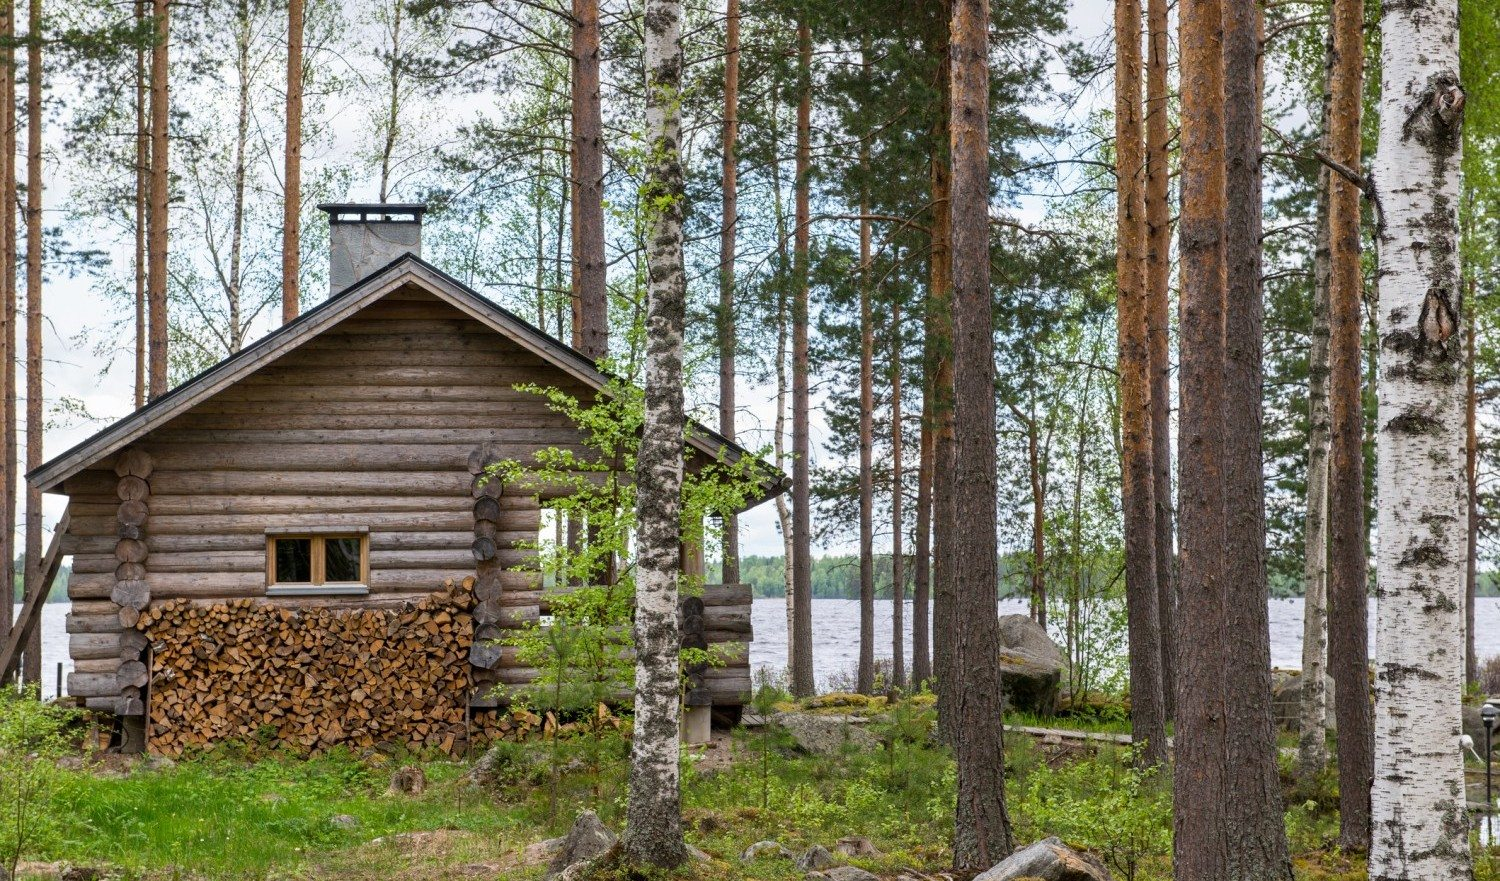 Finnish sauna made of logs.